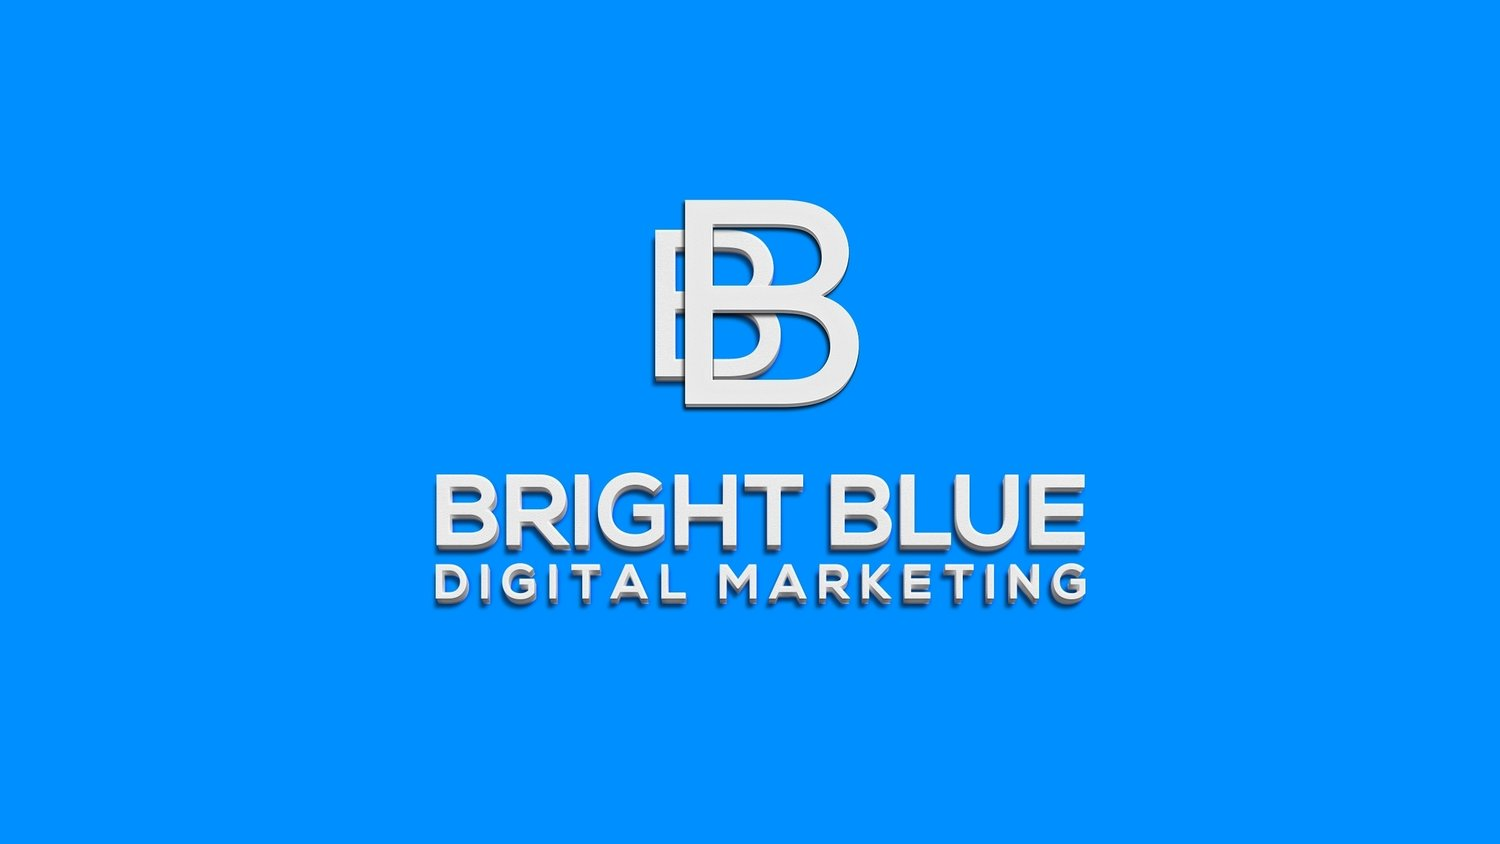 Bright Blue Digital Marketing